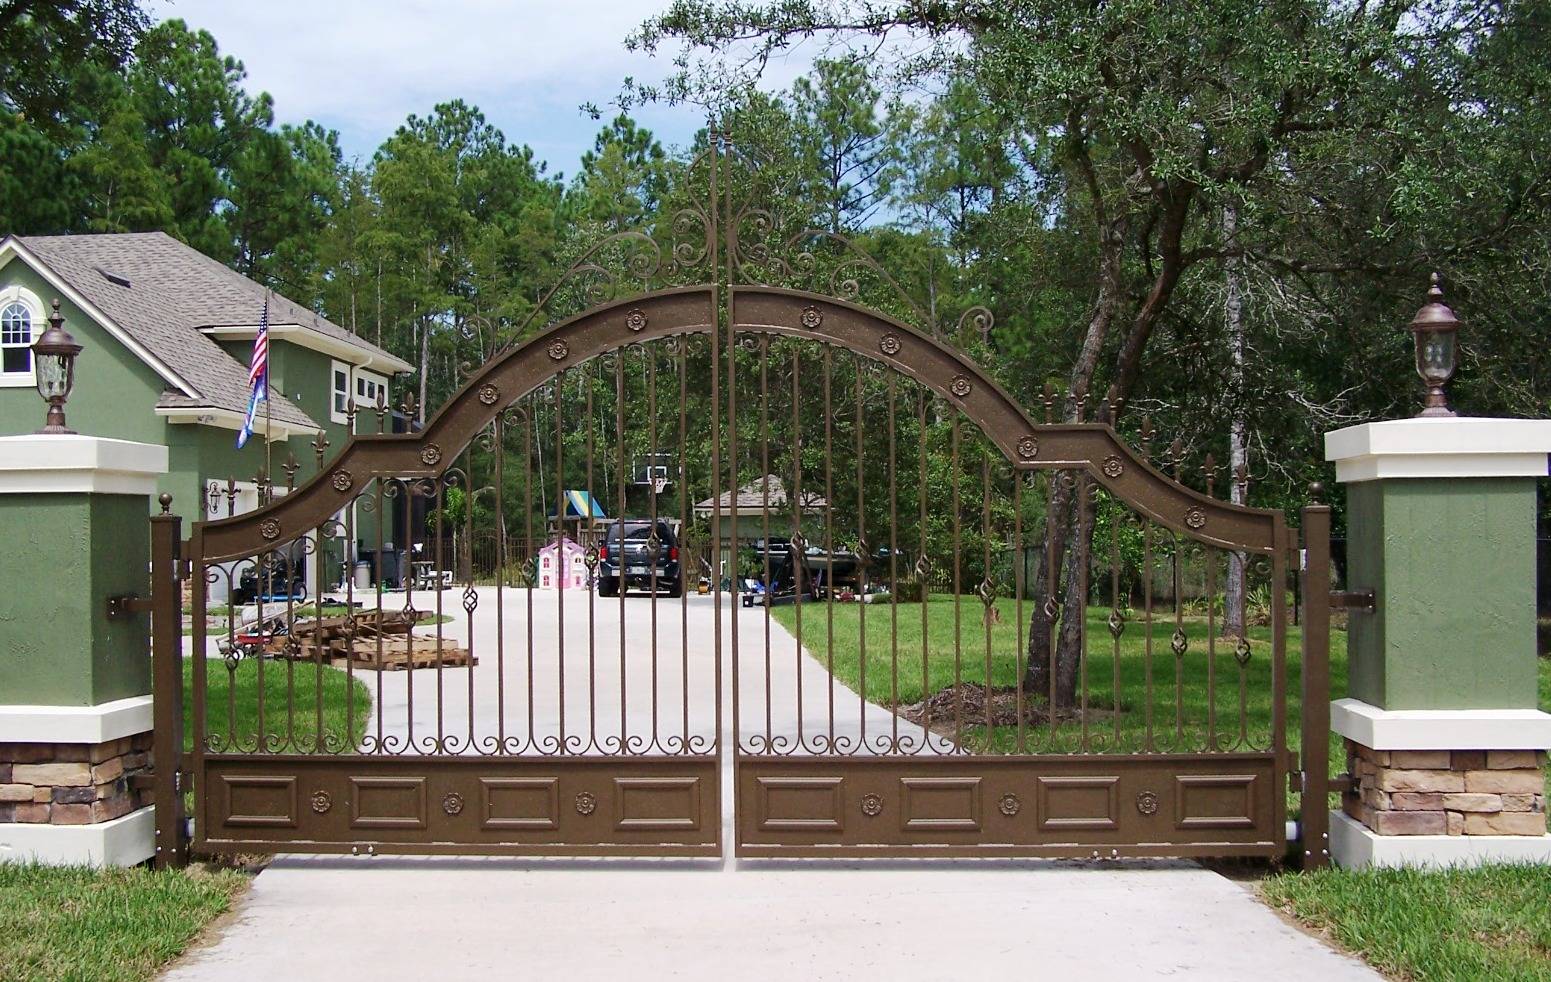 Amazing Custom Driveway Gates Designs 1551 x 982 · 594 kB · jpeg